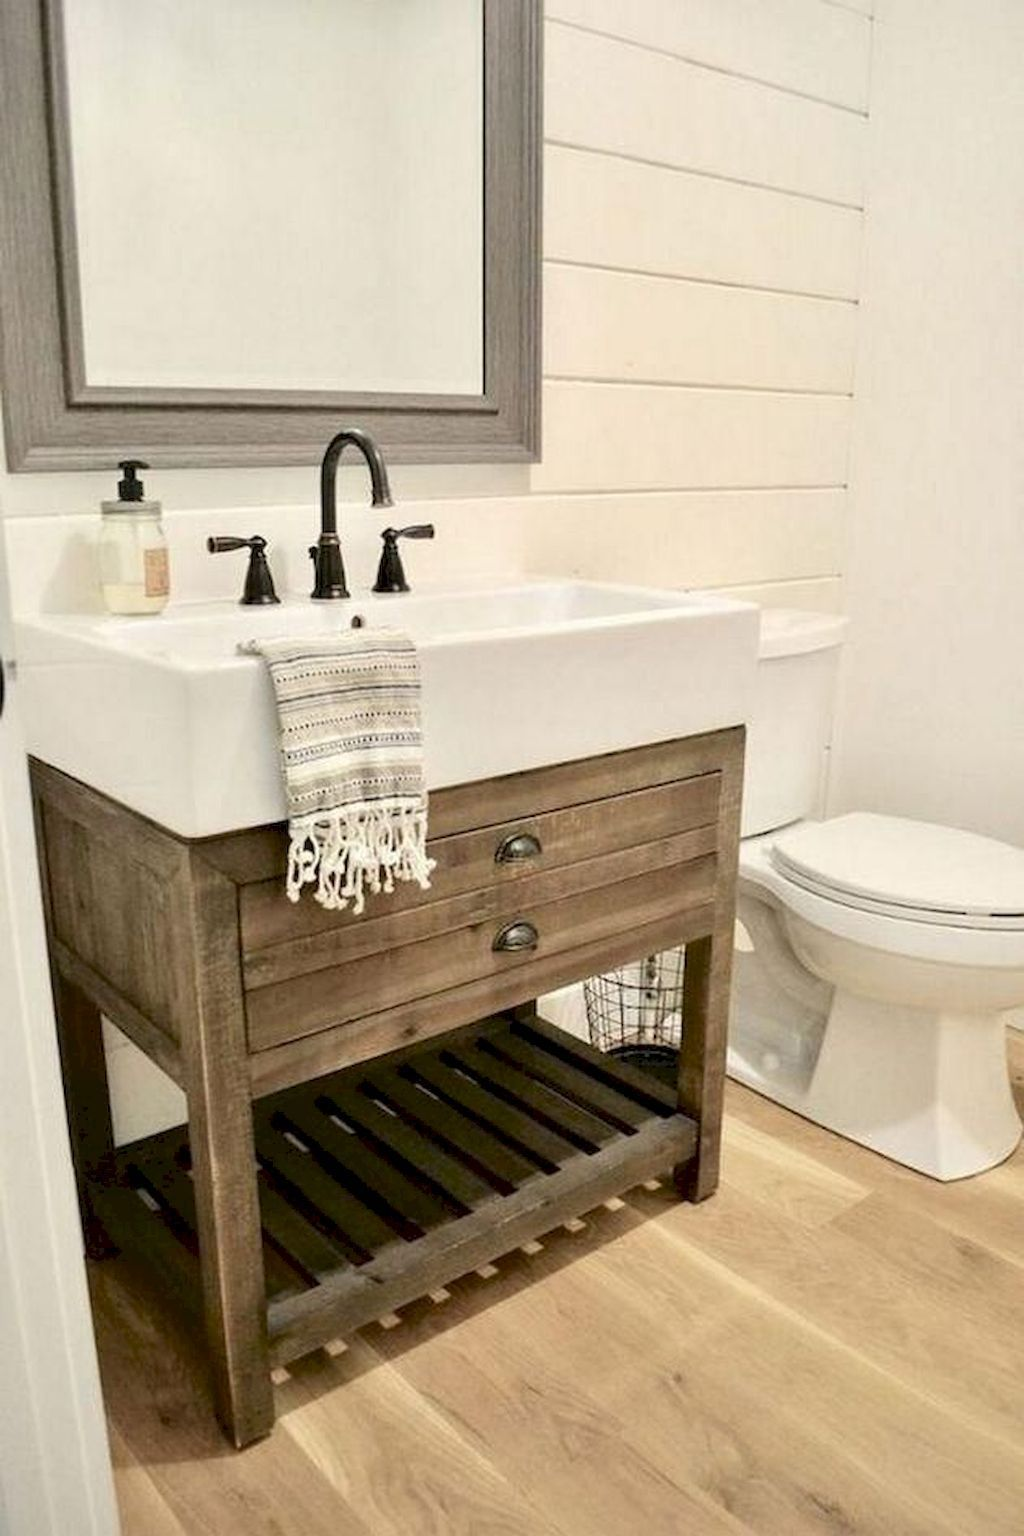 Top Rustic Farmhouse Bathroom Ideas 1 1 Bathroom vanity